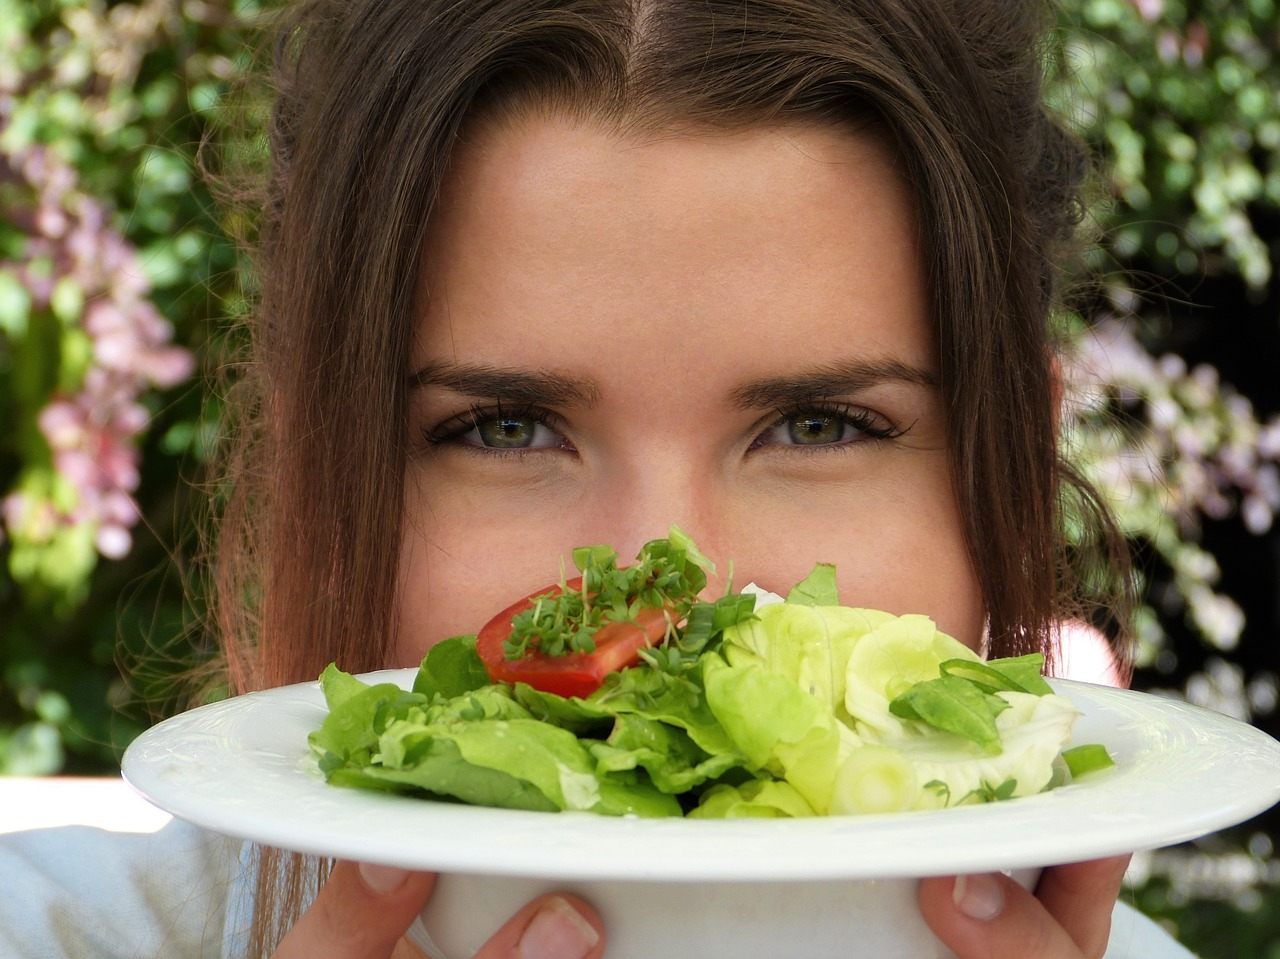 Salad, plate, girl, young woman, eyes - free image from needpix.com